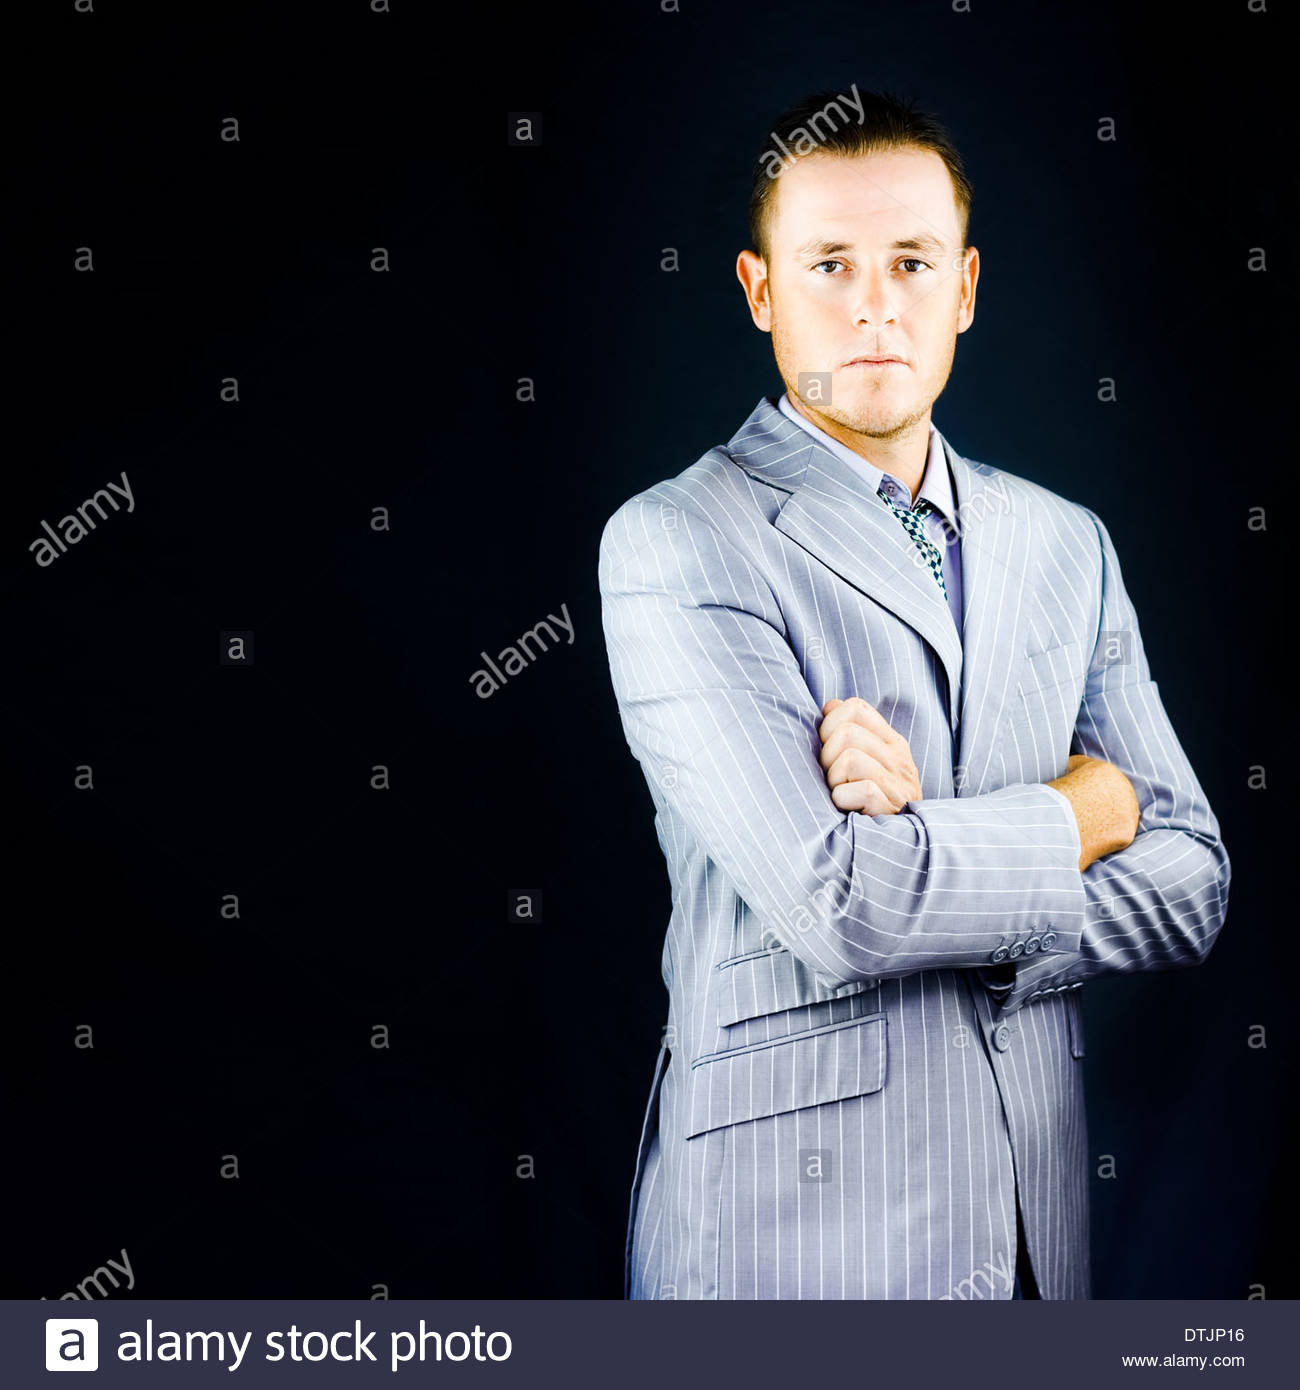 Successful wealthy influential young business man posing in a bespoke pinstripe suit with an air of authority and - Stock Image